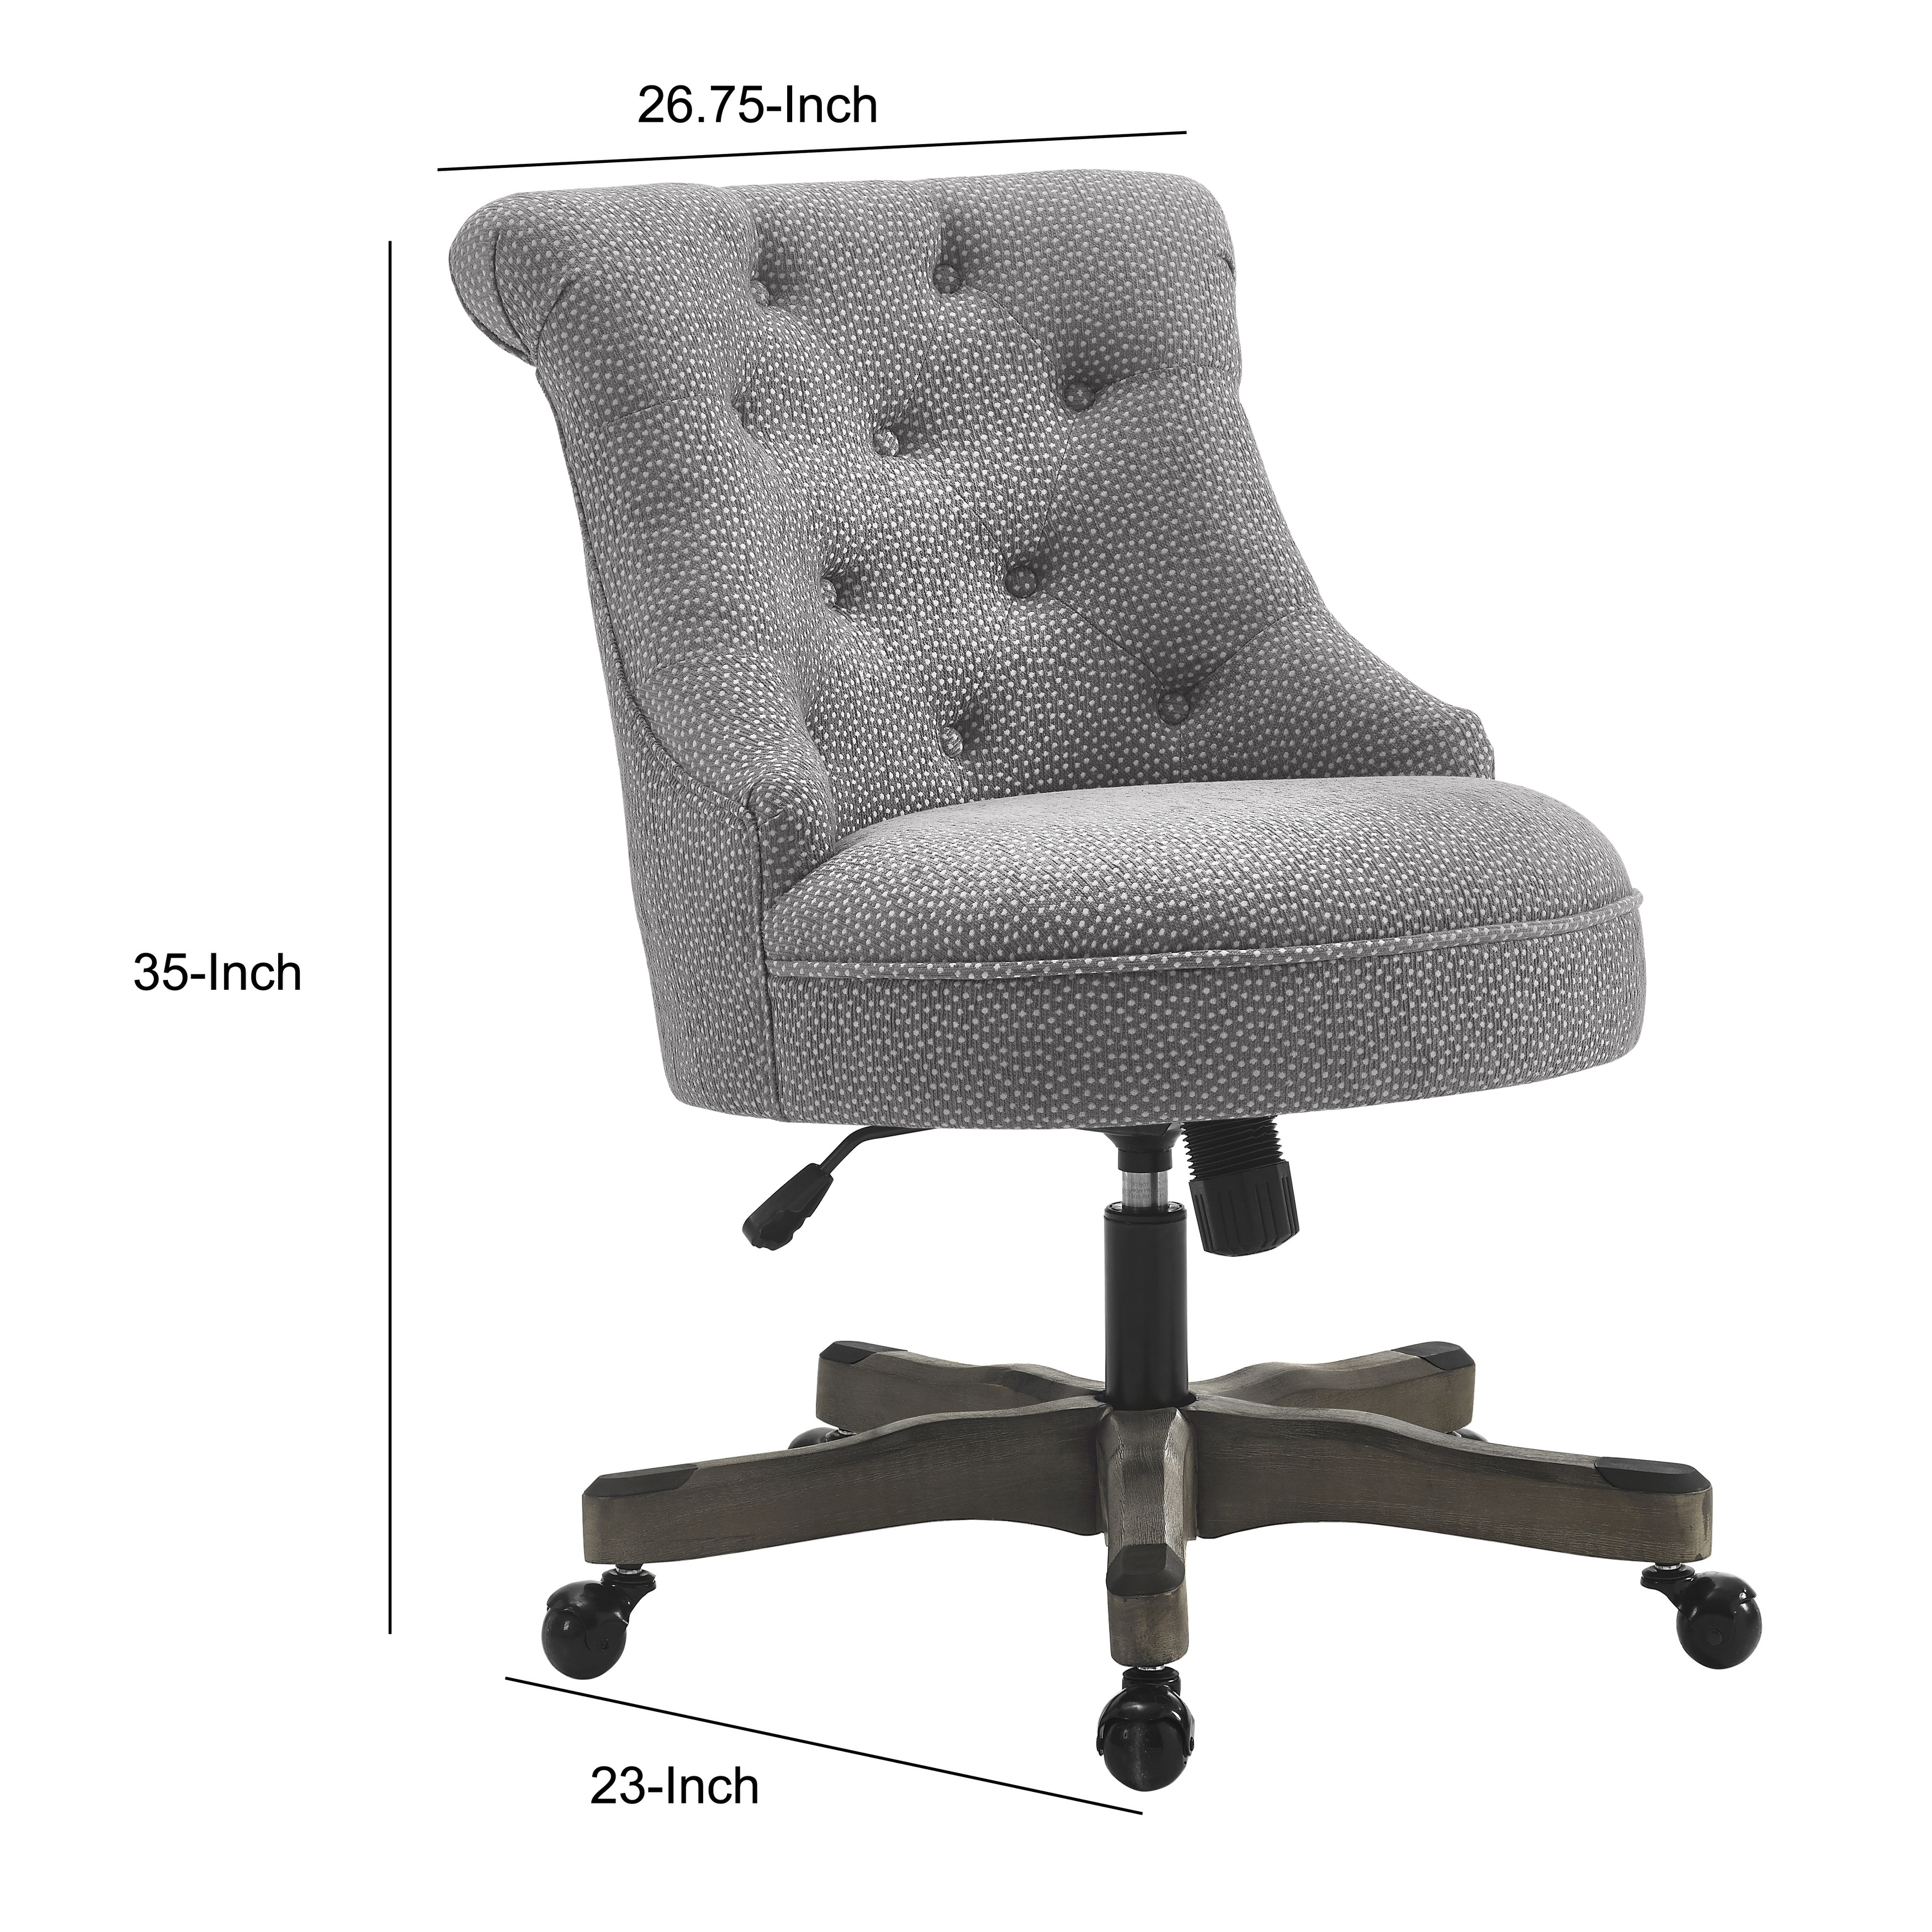 Wooden Office Chair With Textured Fabric Upholstery Gray On Sale Overstock 29212028